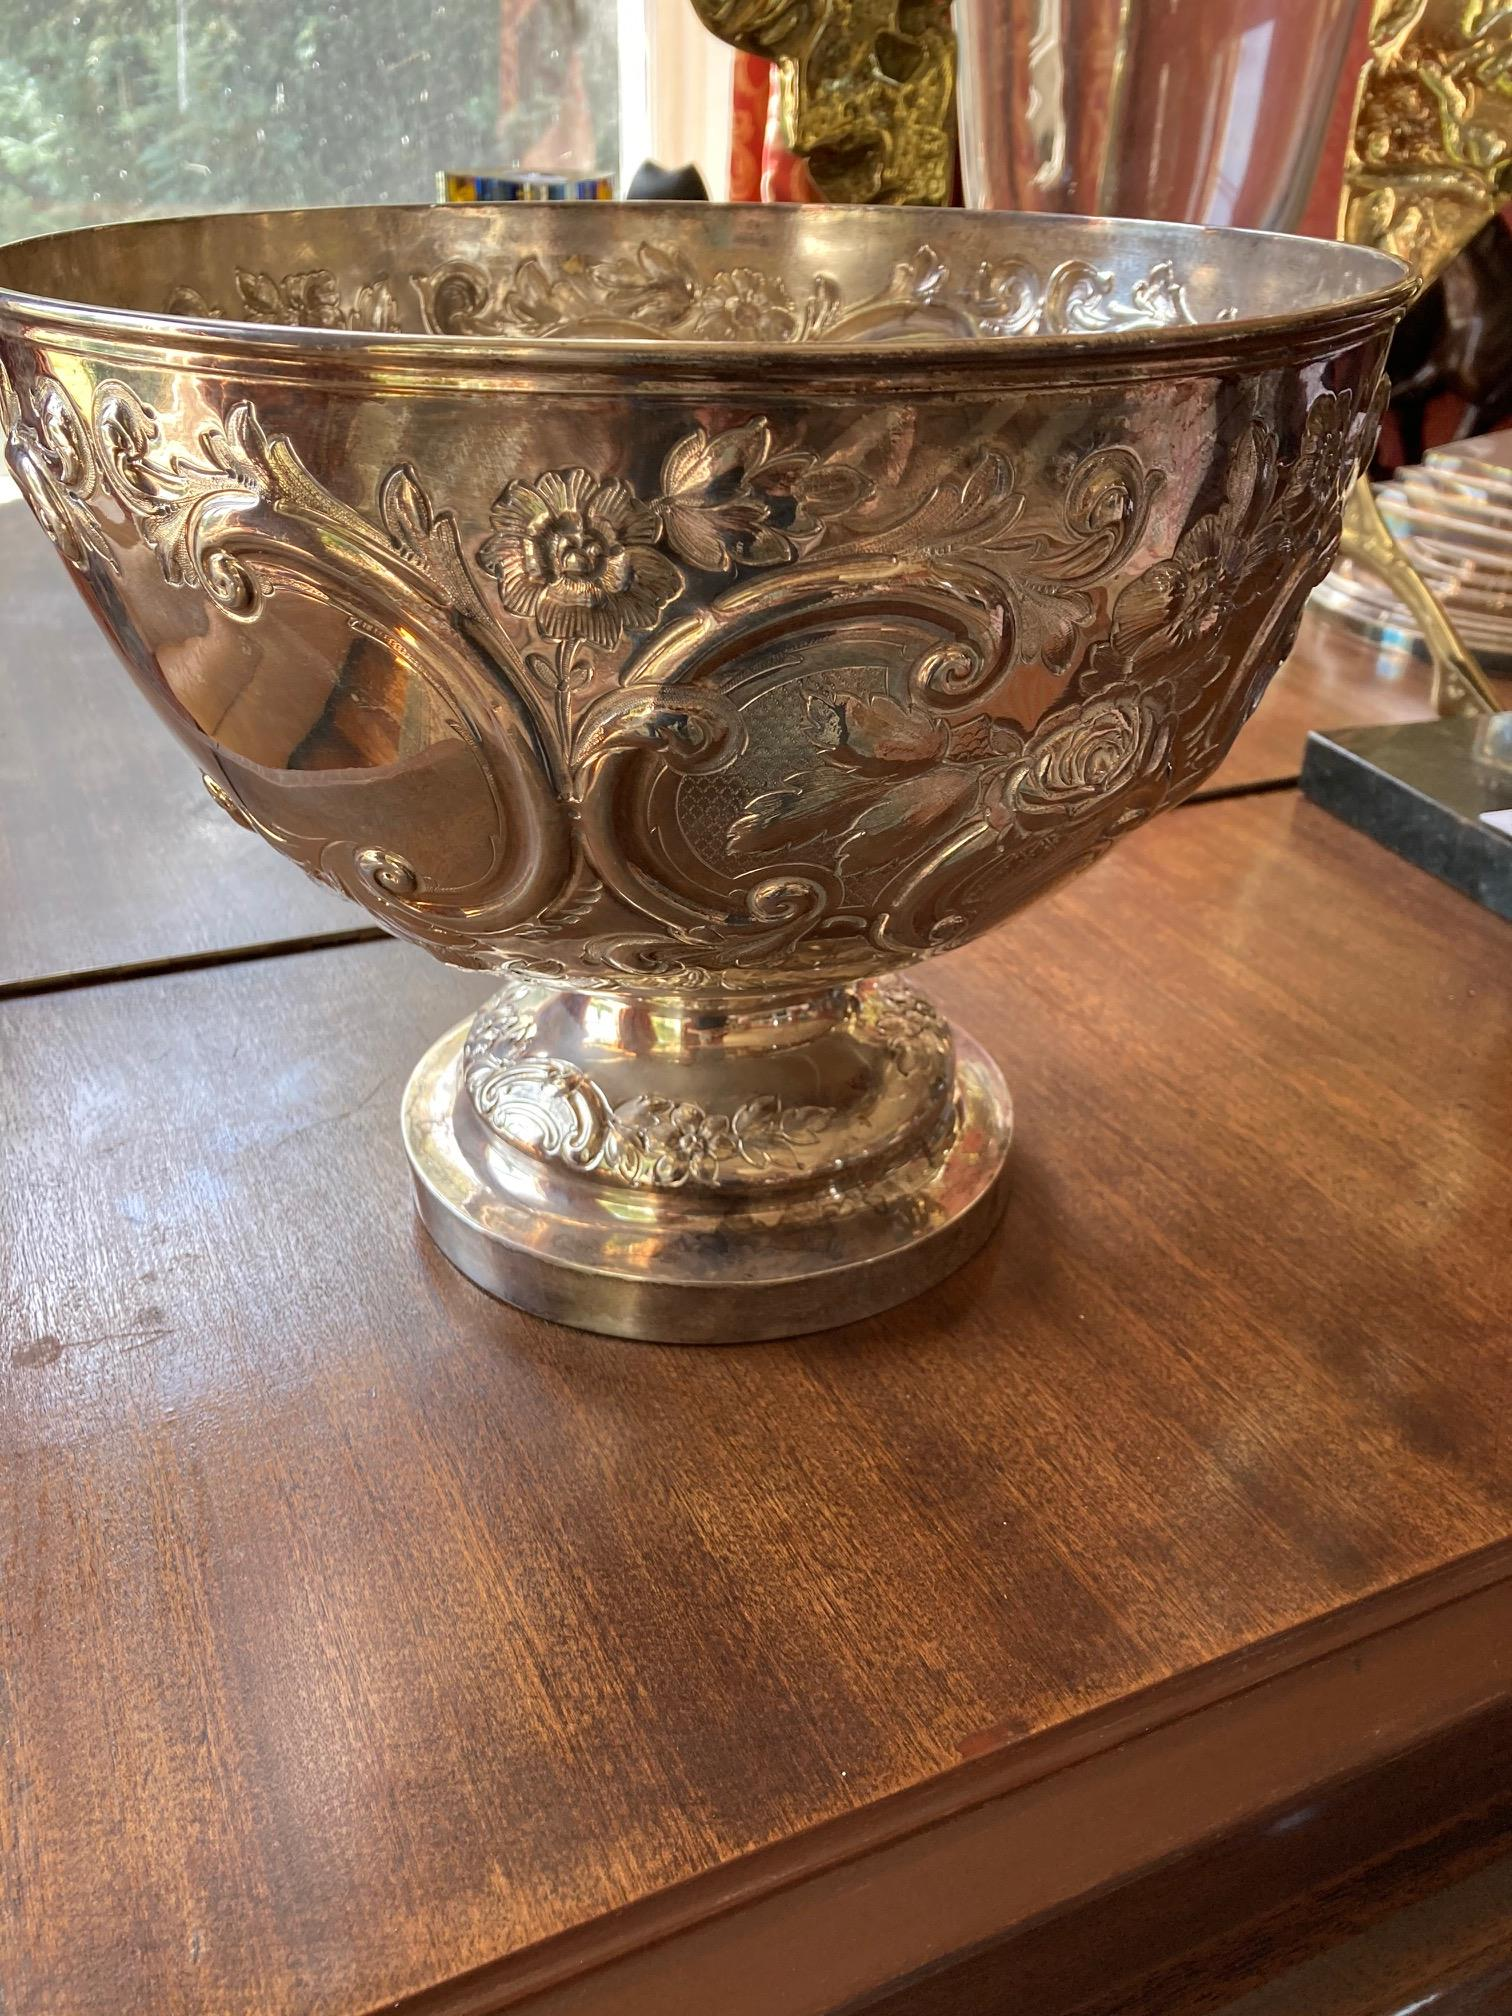 A large embossed Victorian silver Punch Bowl, London 1887, by Messrs Barnard, chased with scrolls - Image 5 of 6